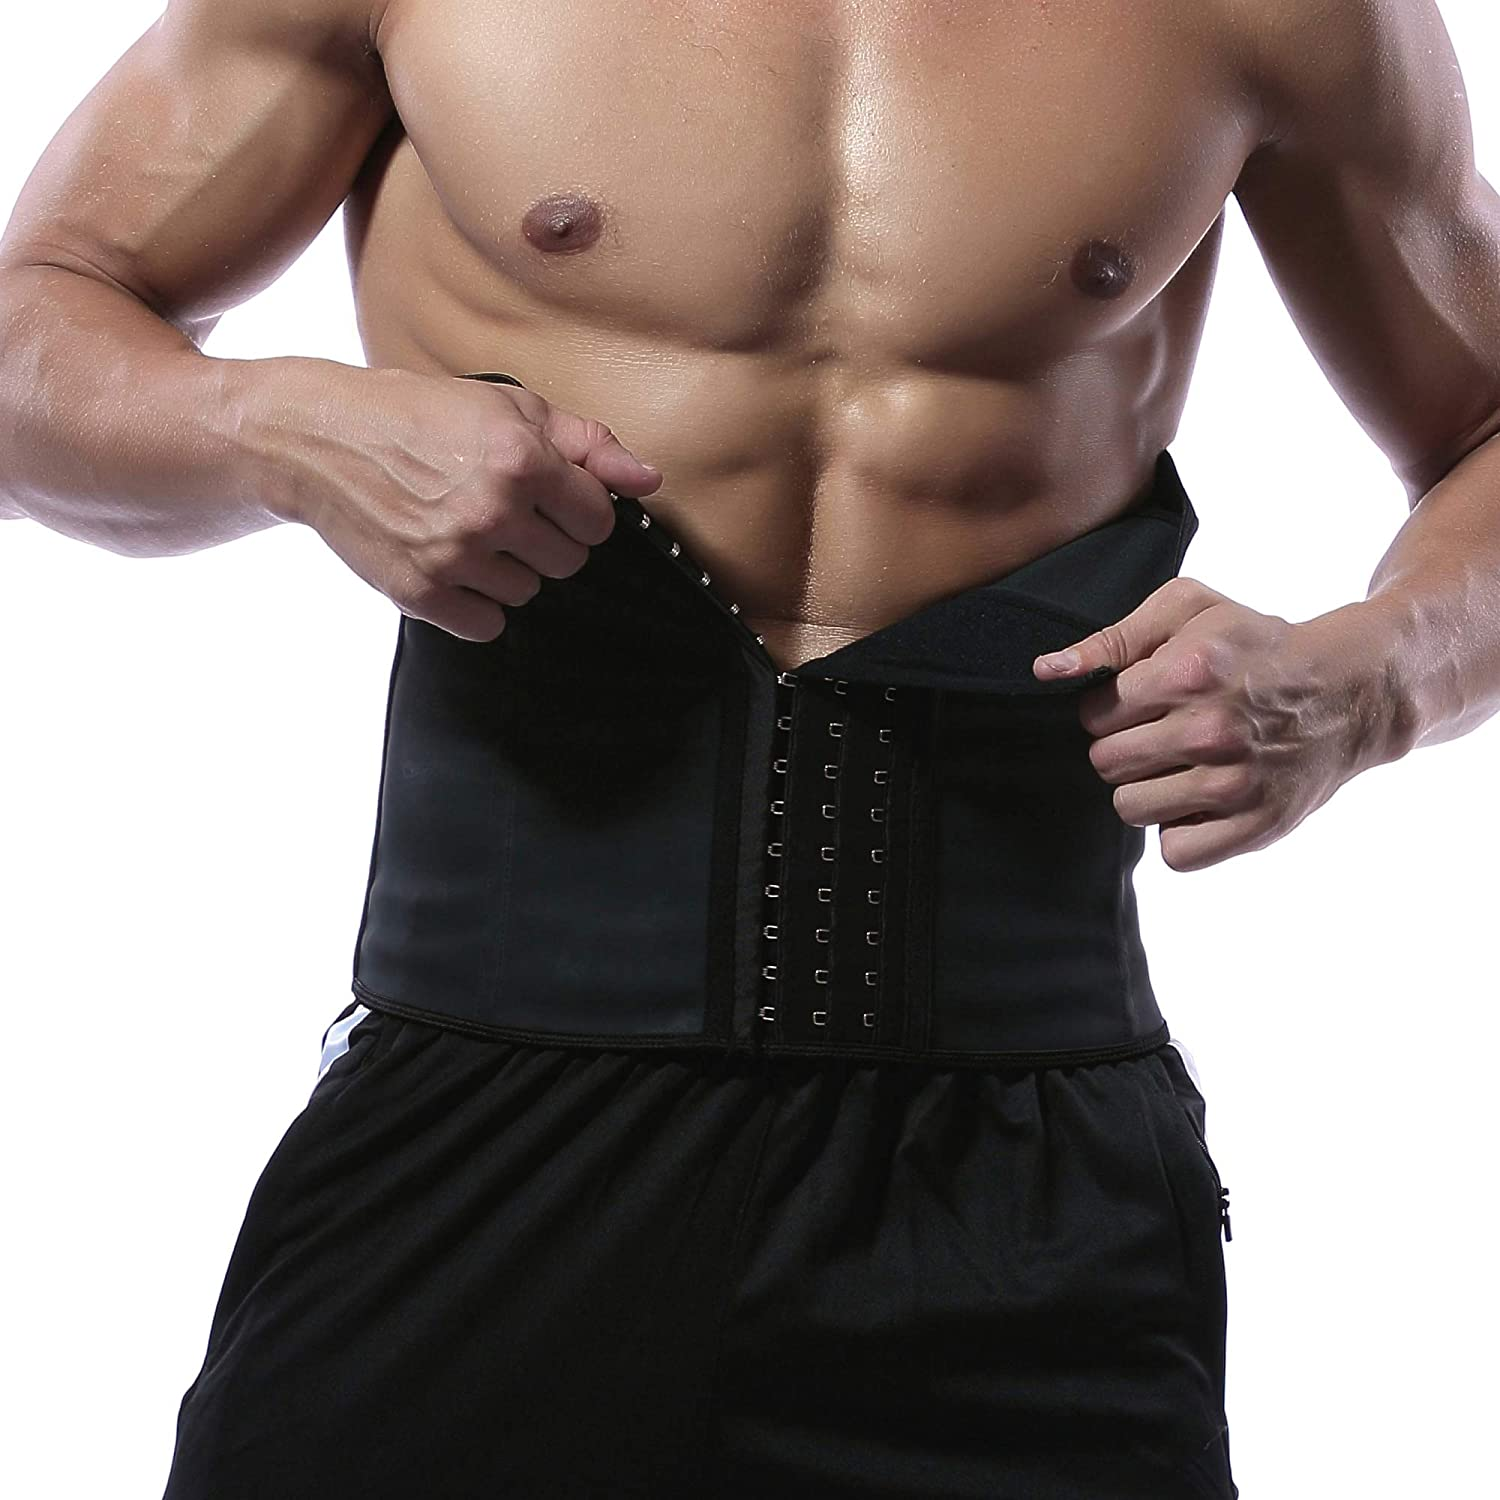 Hanmeimei 100 Latex Men Waist Trainer Belt Workout for Body Weight Loss Fitness Fat Burner Trimmer Band Back Support